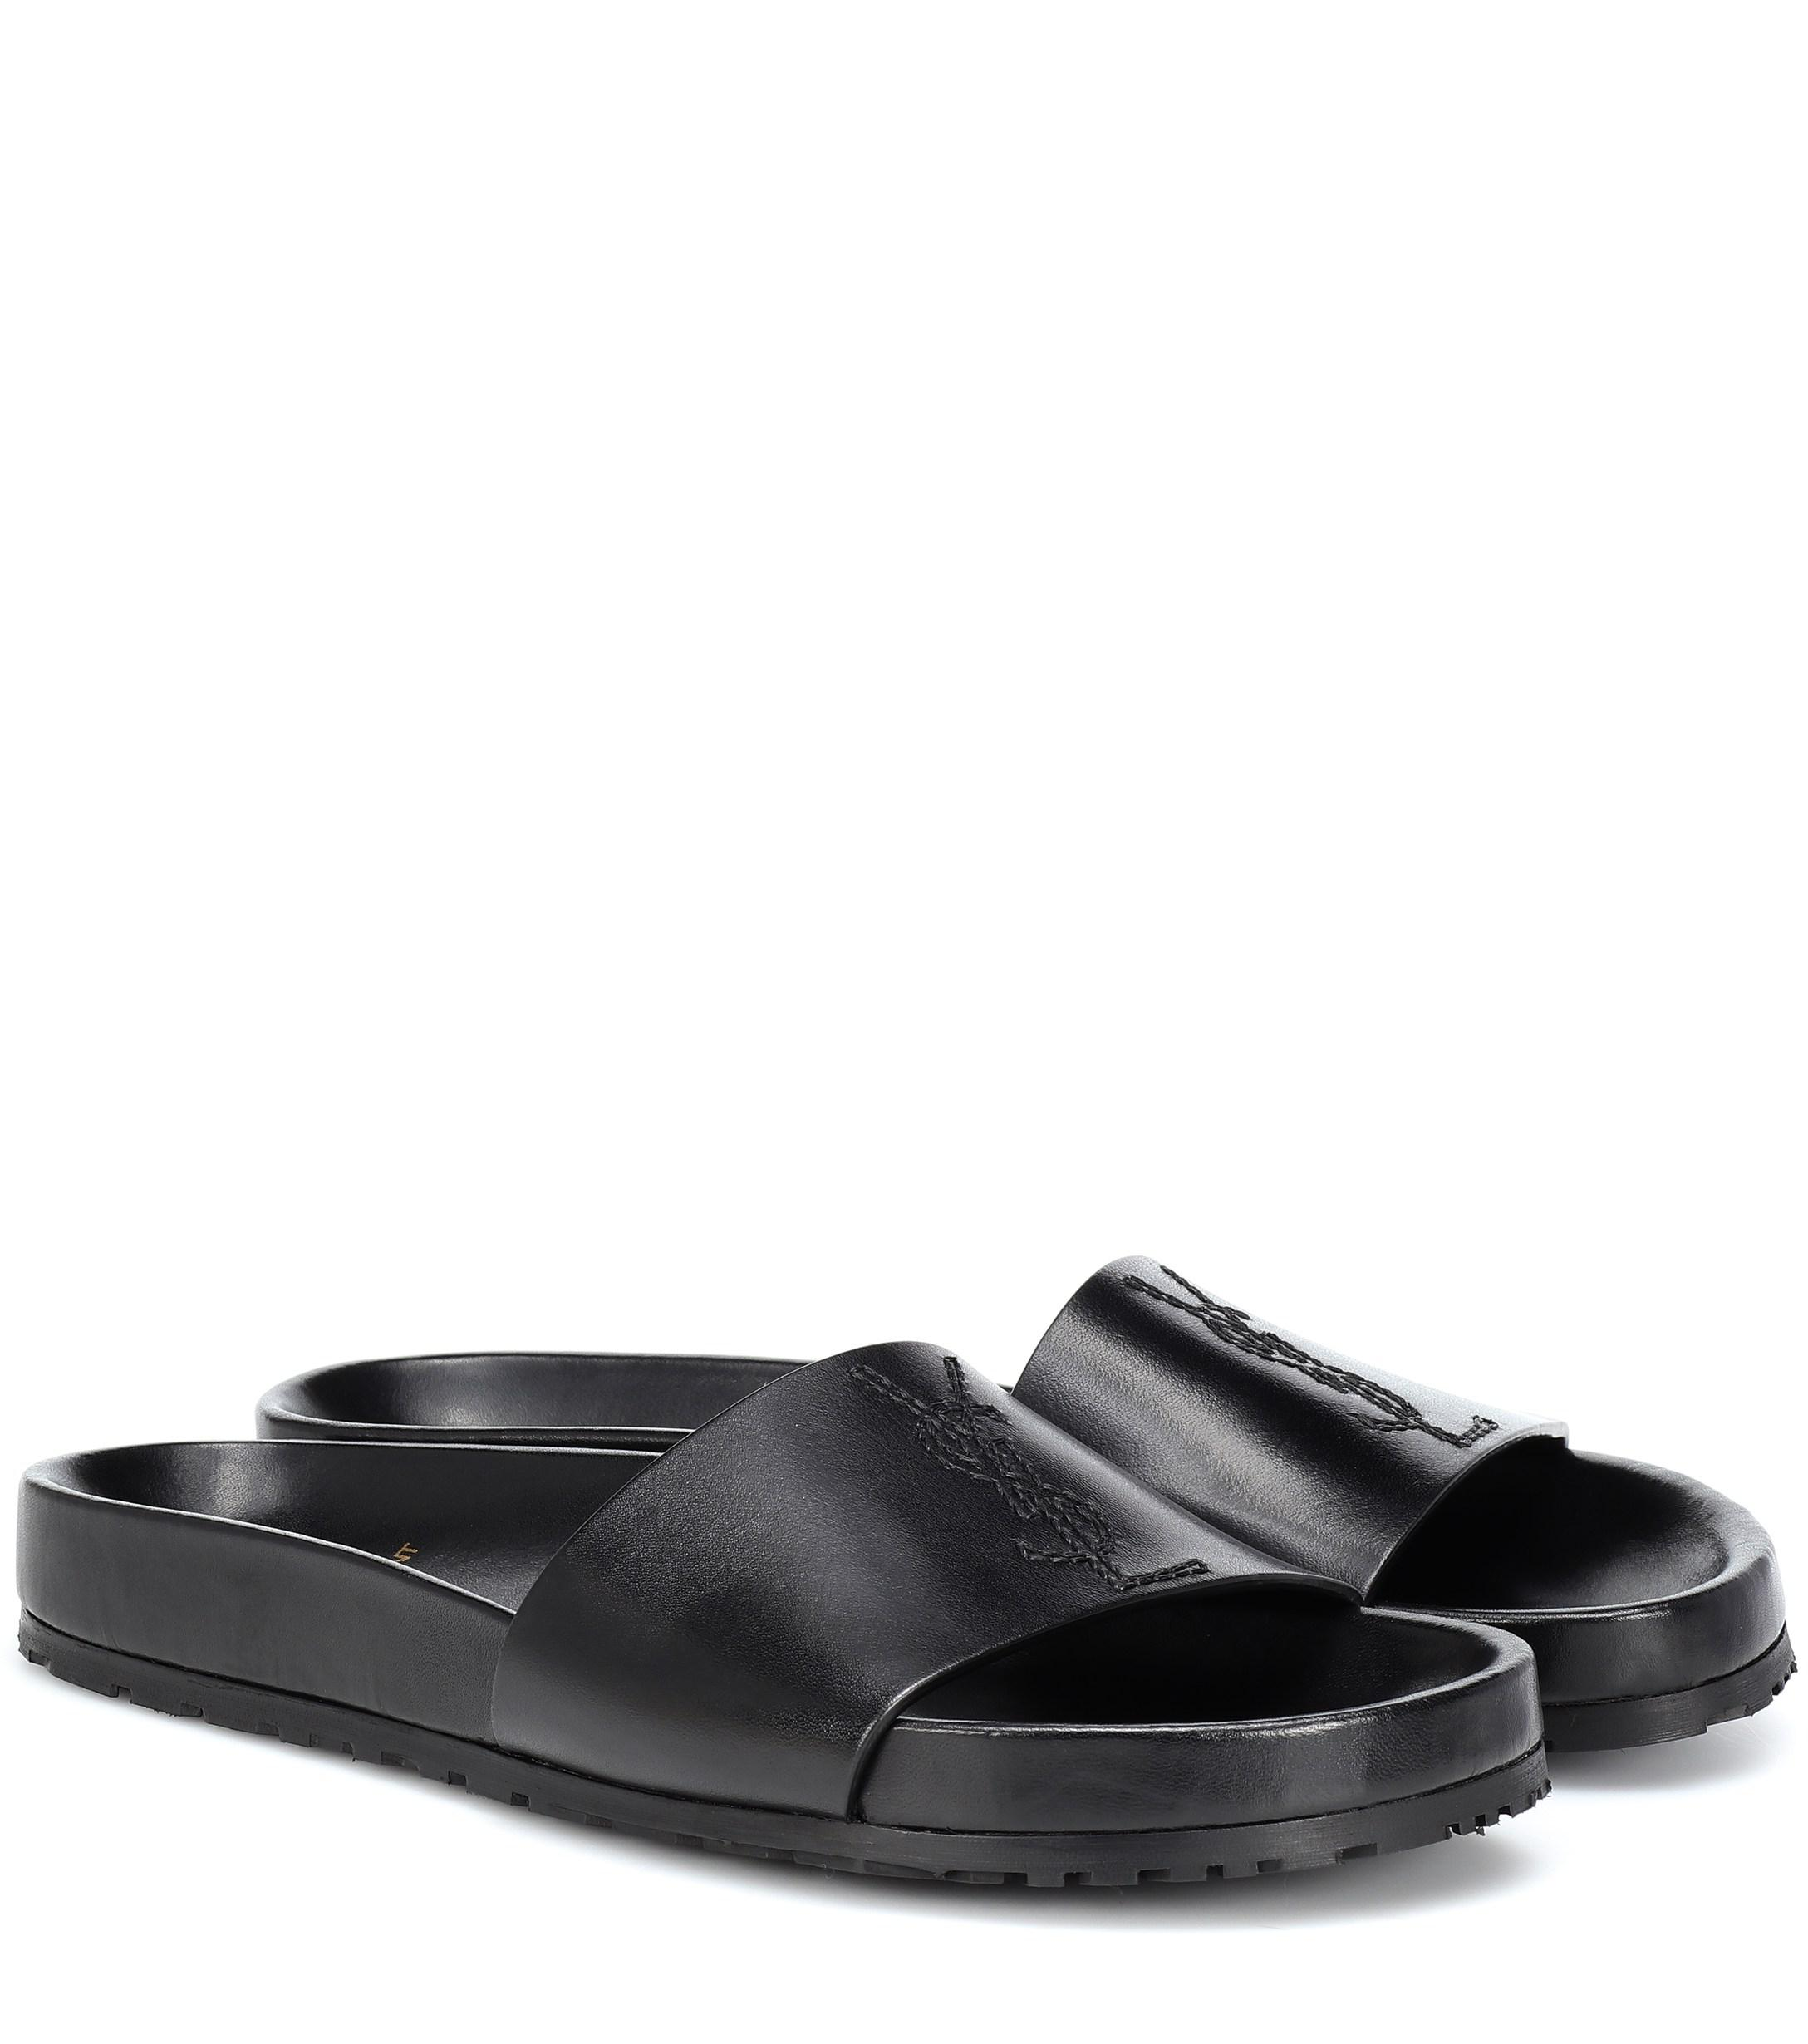 78a3db2db277 Lyst - Saint Laurent Jimmy Leather Slides in Black